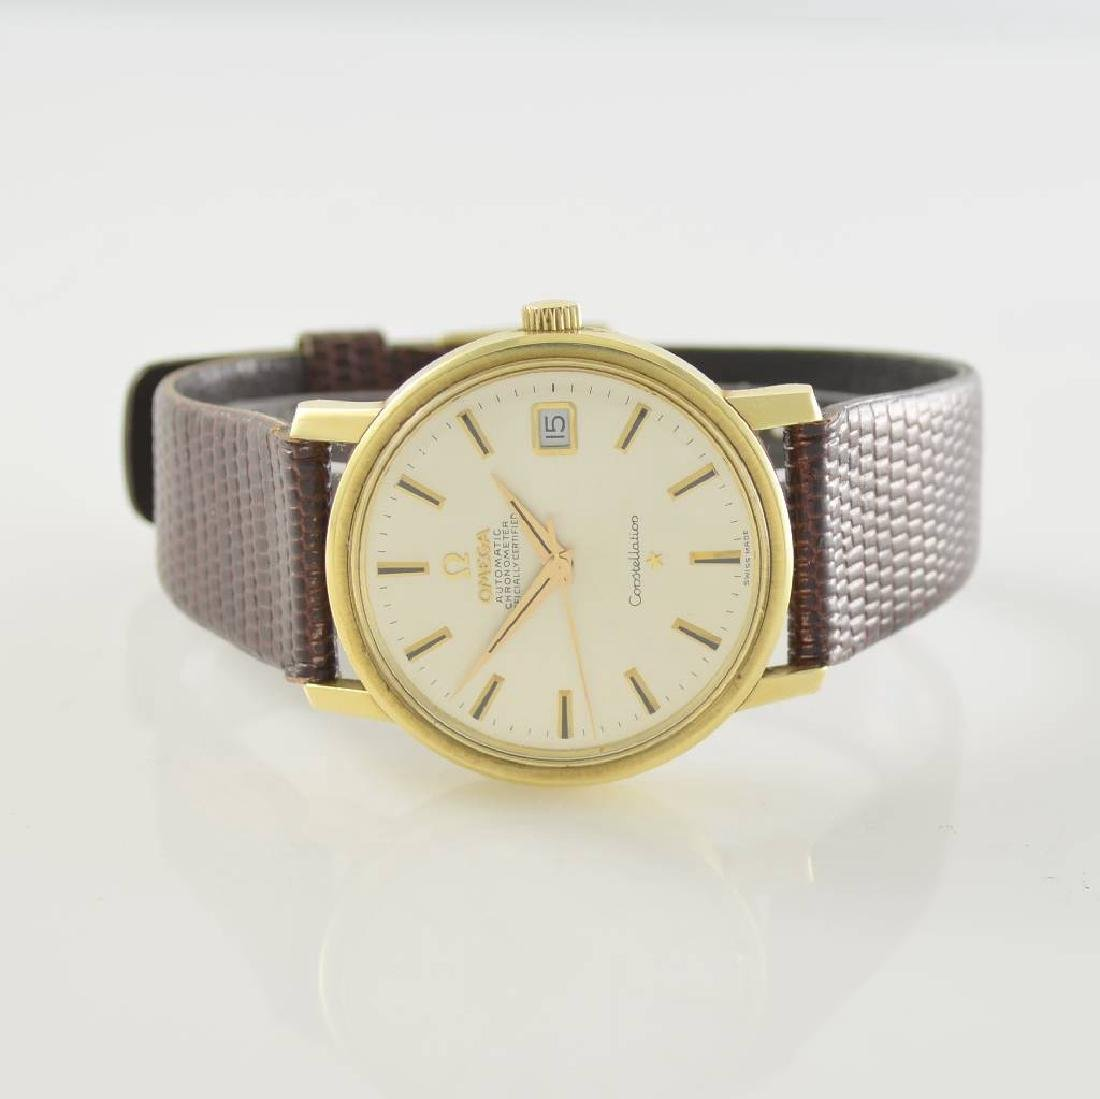 OMEGA Constellation gents wristwatch